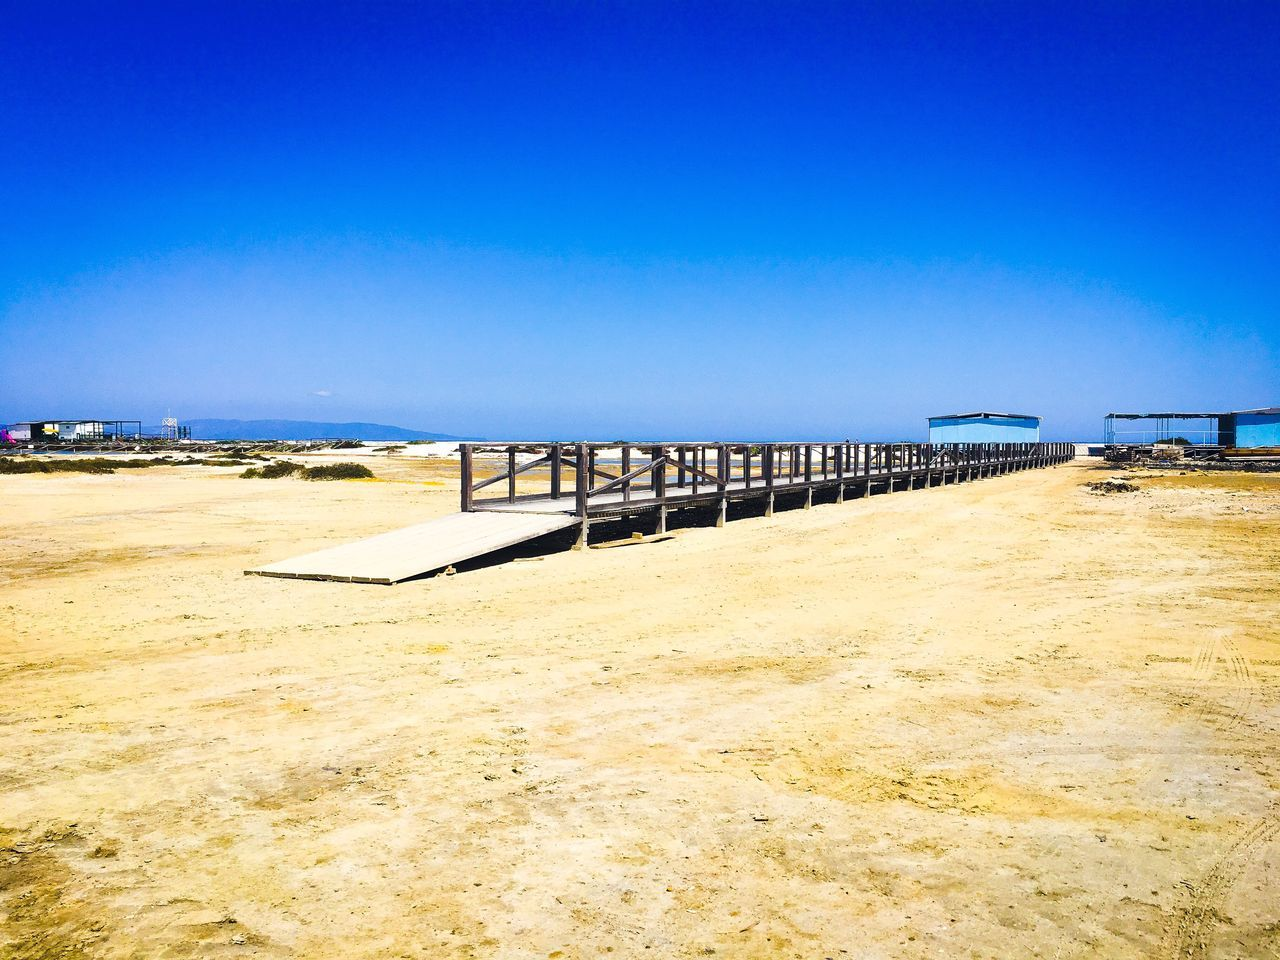 beach, sand, day, clear sky, nature, copy space, tranquility, tranquil scene, sea, scenics, outdoors, blue, sunlight, no people, water, beauty in nature, horizon over water, built structure, landscape, architecture, sky